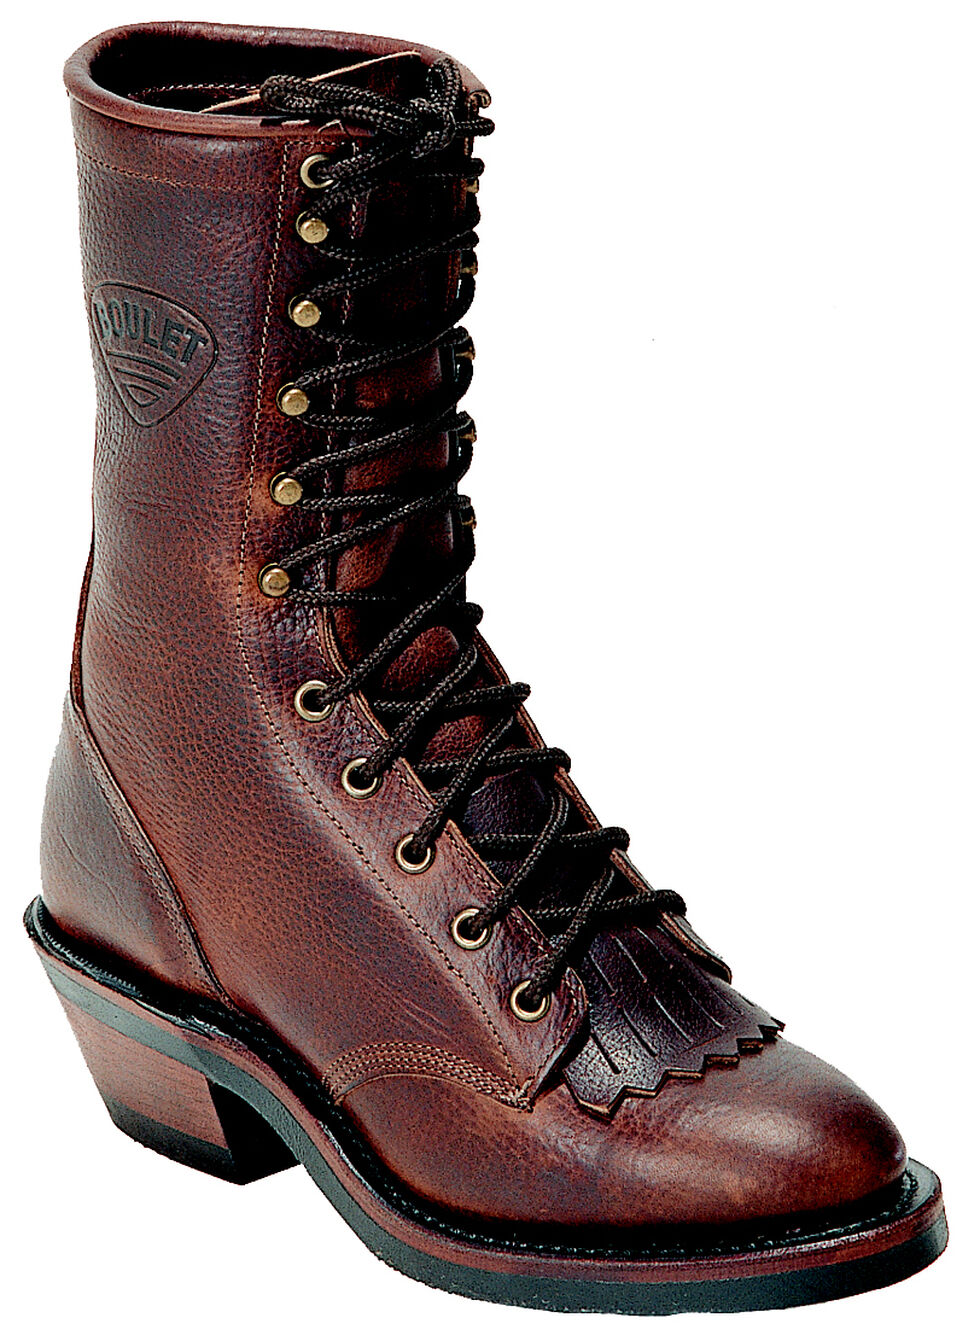 "Boulet Packer Grizzly Mountain 9"" Lace Up Boots - Round Toe, Brown, hi-res"